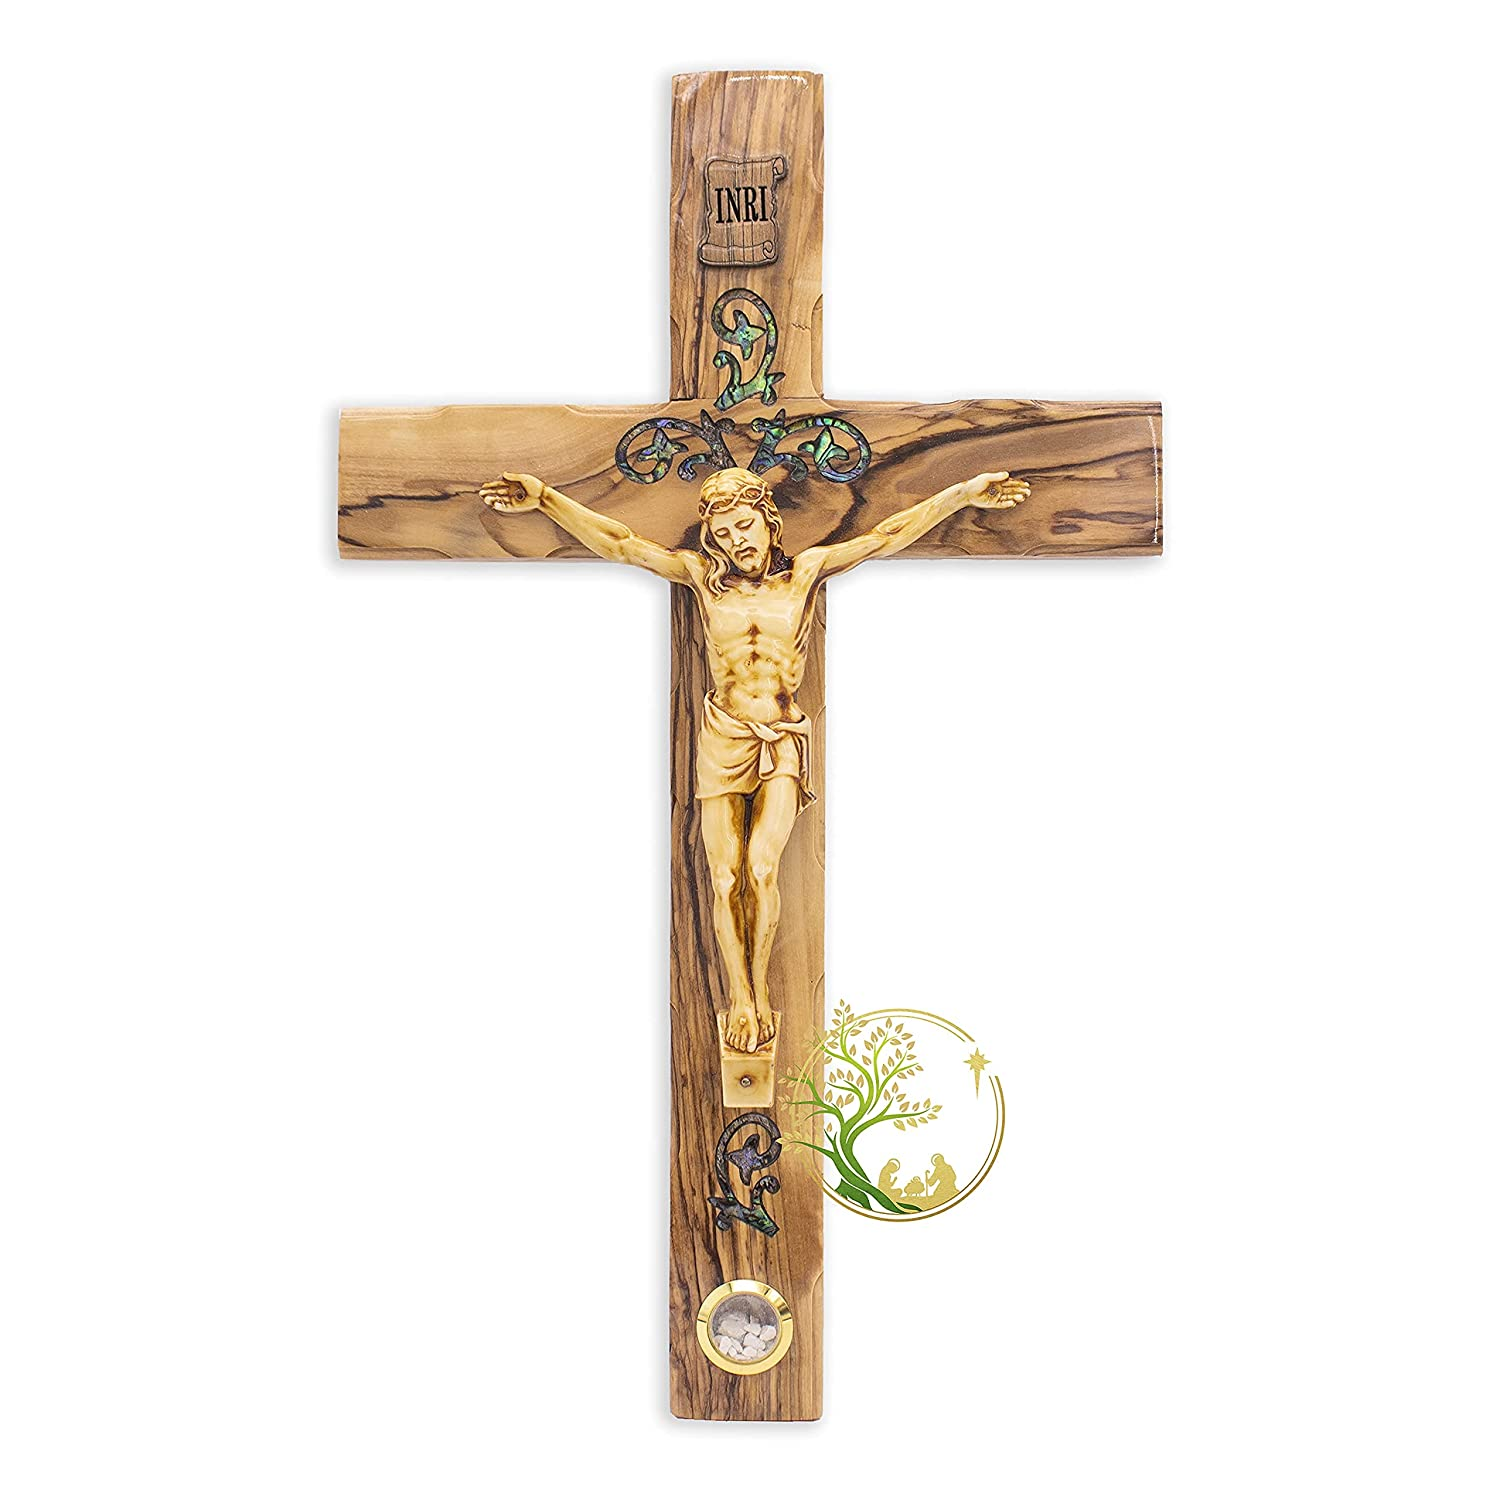 Wall Cross | Large Crucifix wall cross made of Mother of Pearl from the Holy Land | Catholic crucifix for wall Religious Home décor | Holy Cross for wall